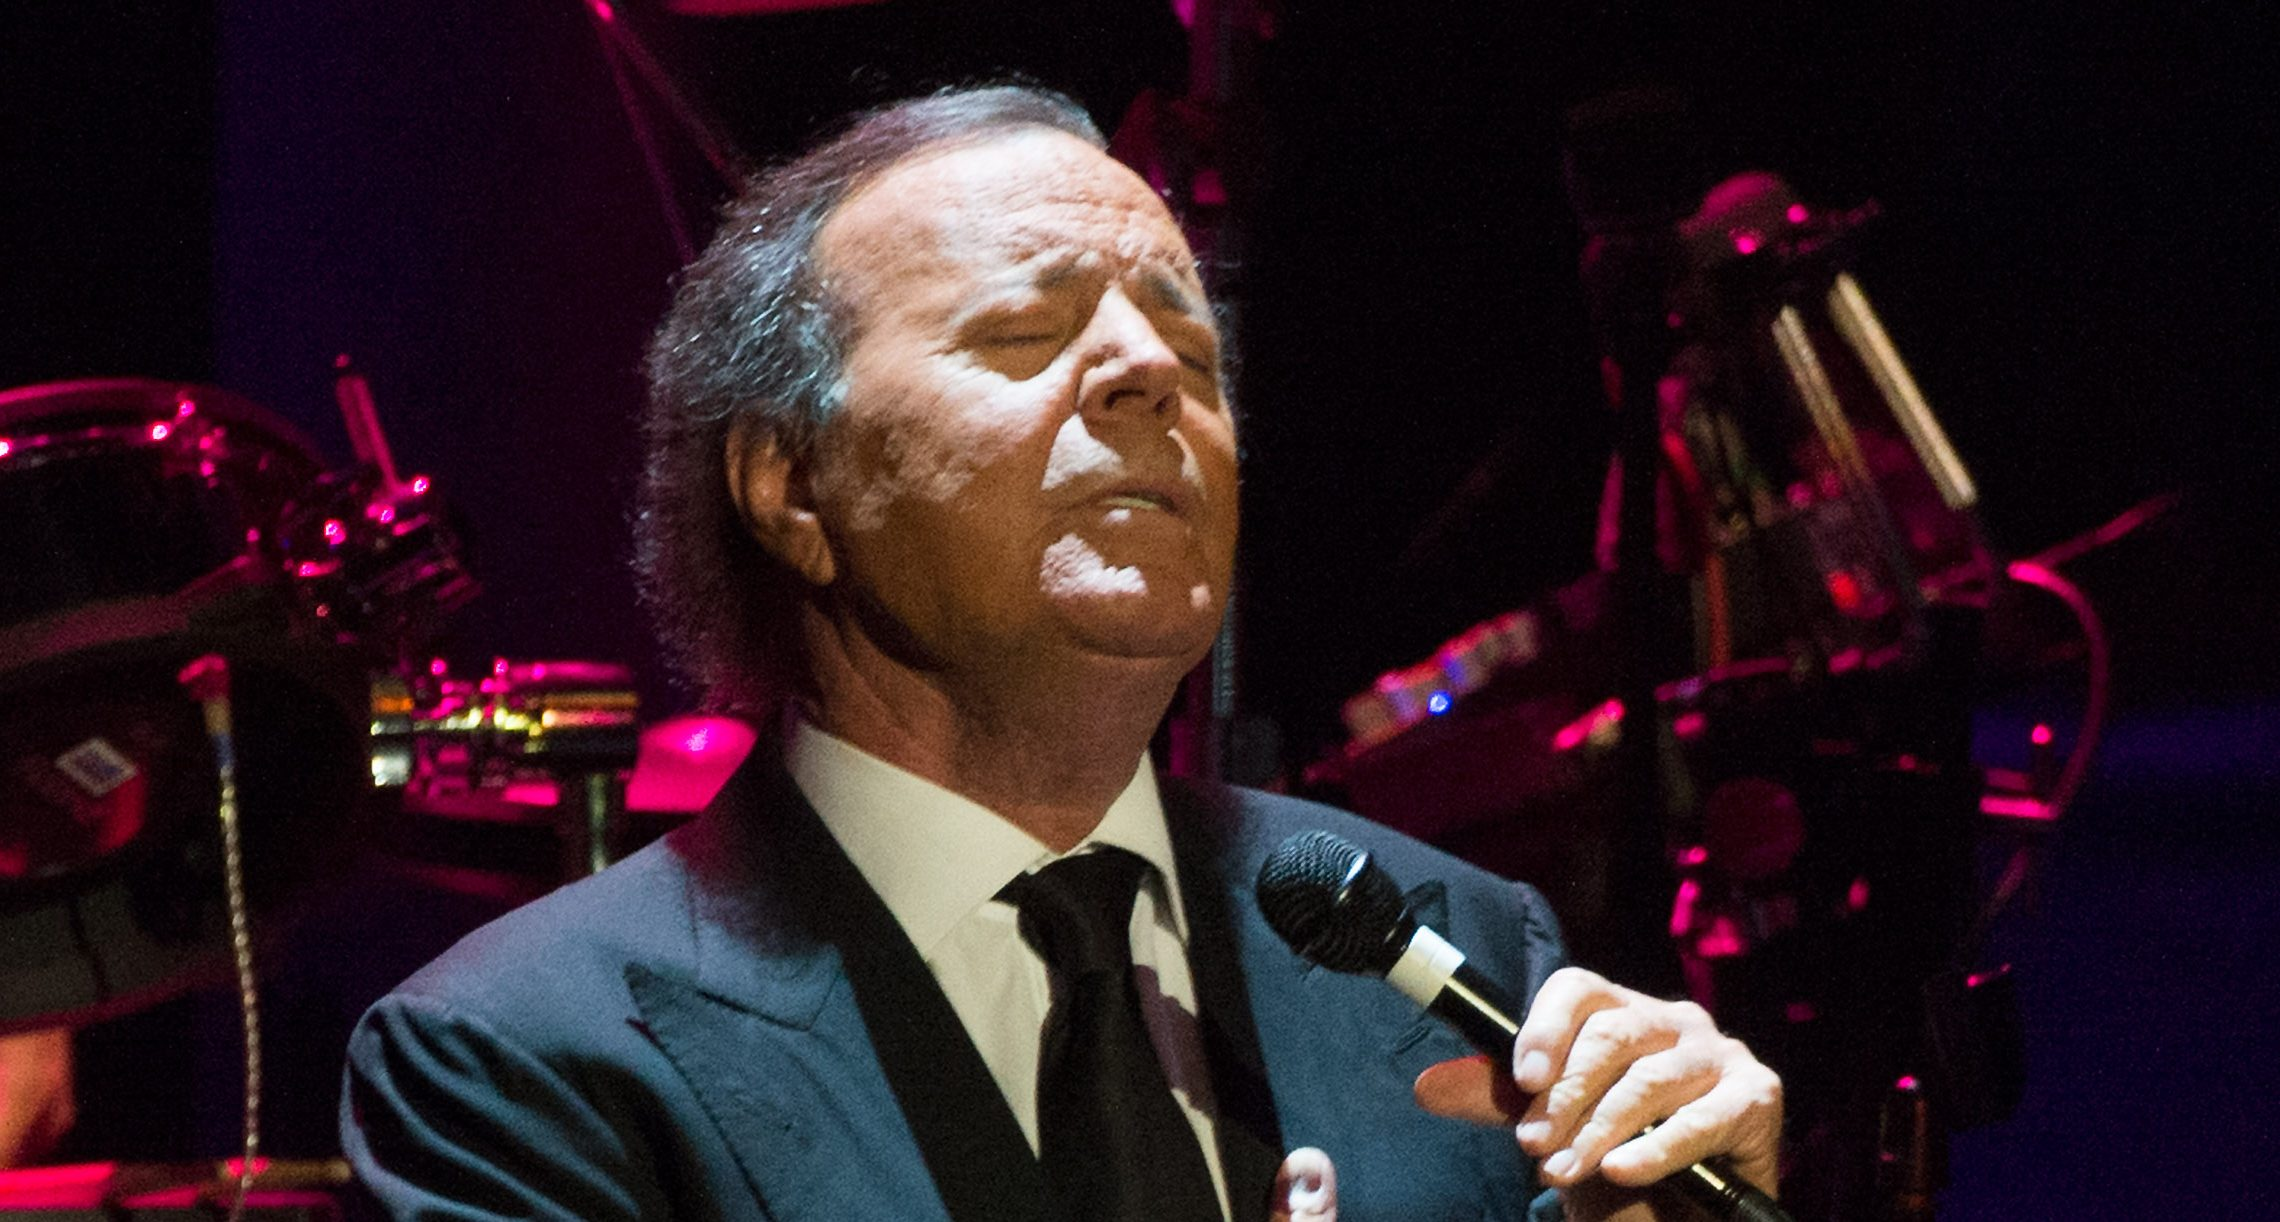 Iconic Singer Julio Iglesias Is Getting a Show About His Life